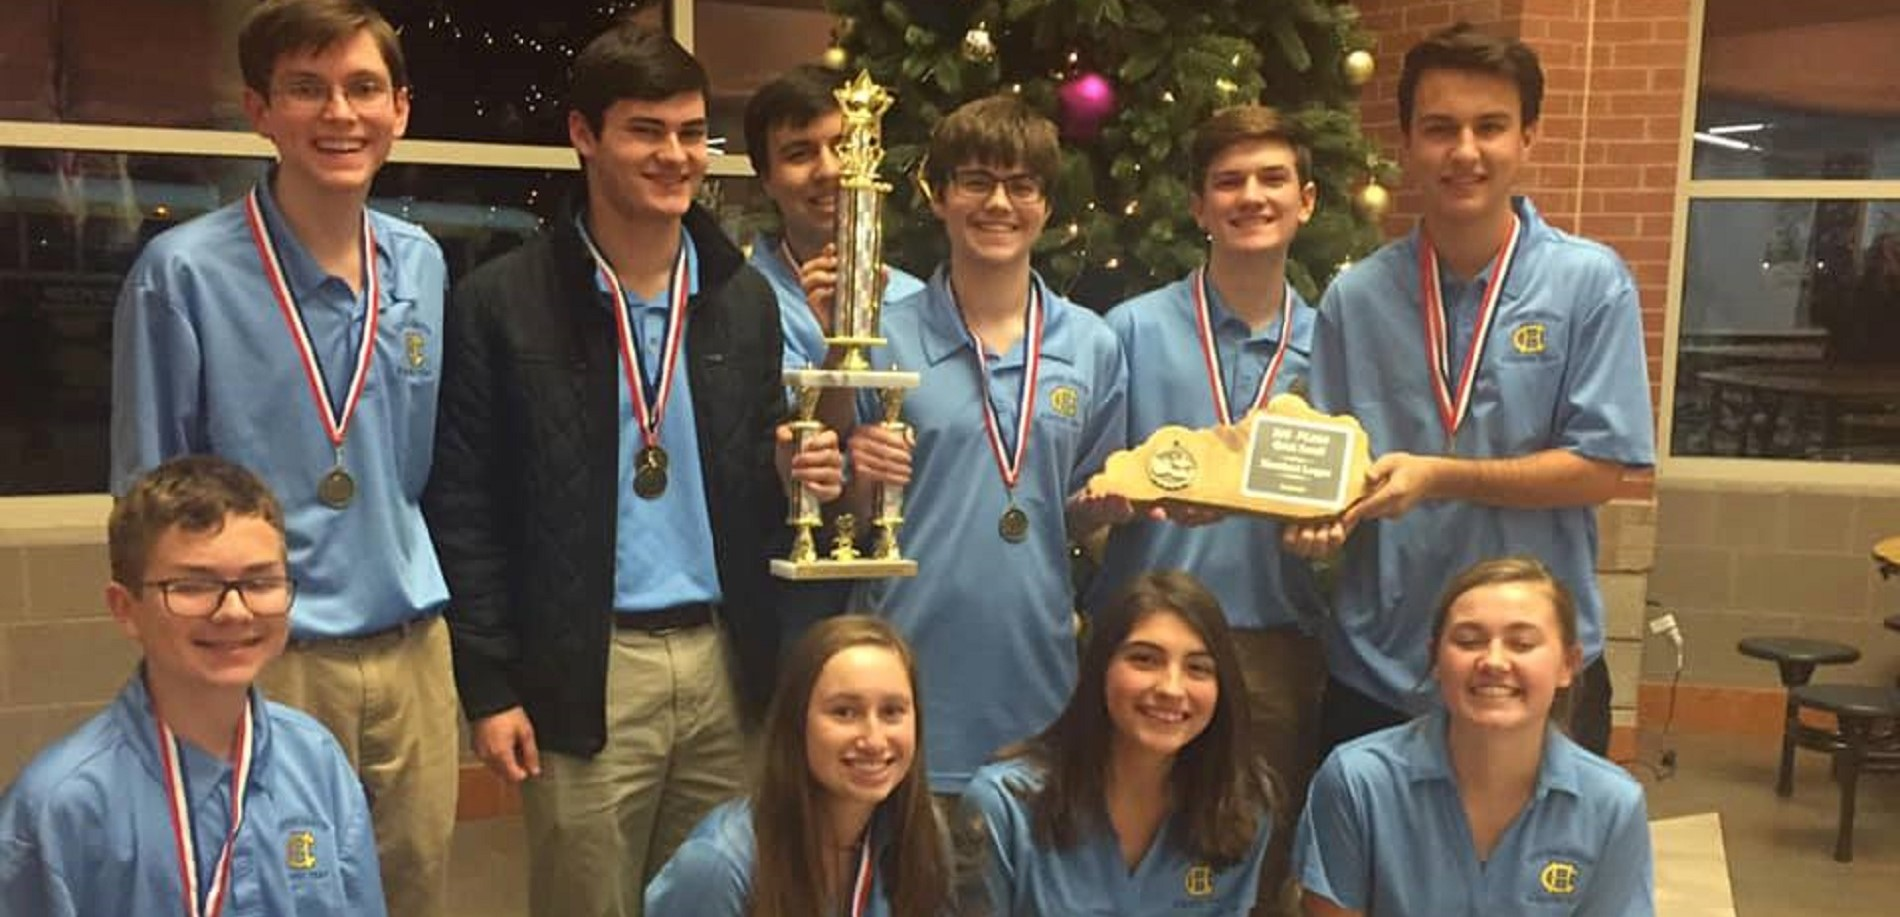 The Central Hardin High School Academic Team recently earned the Heartland League Overall Championship.